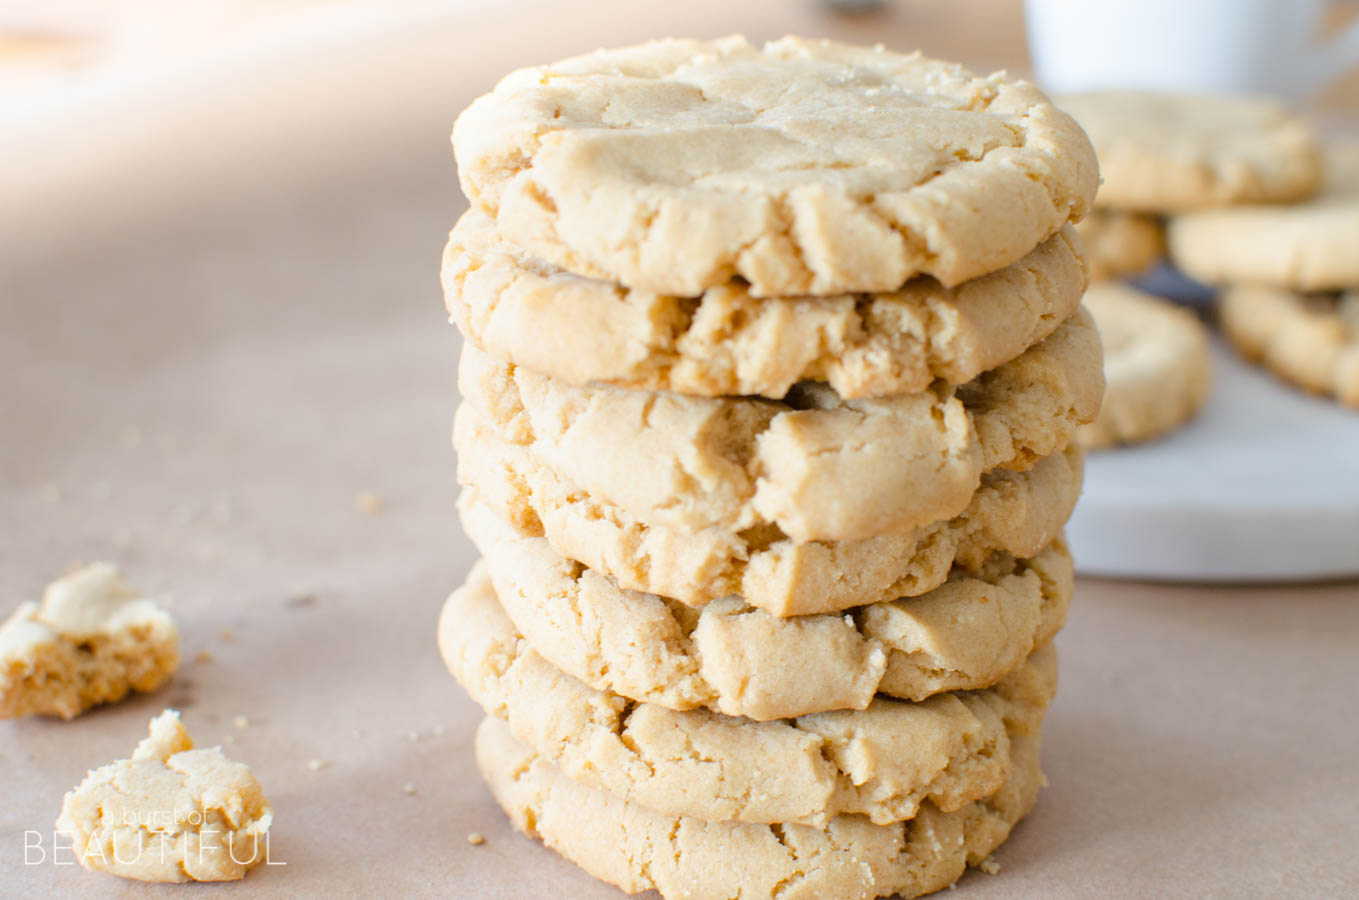 These classic peanut butter cookies are the perfection combination of crispy on the outside and soft and chewy on the inside | A Burst of Beautiful